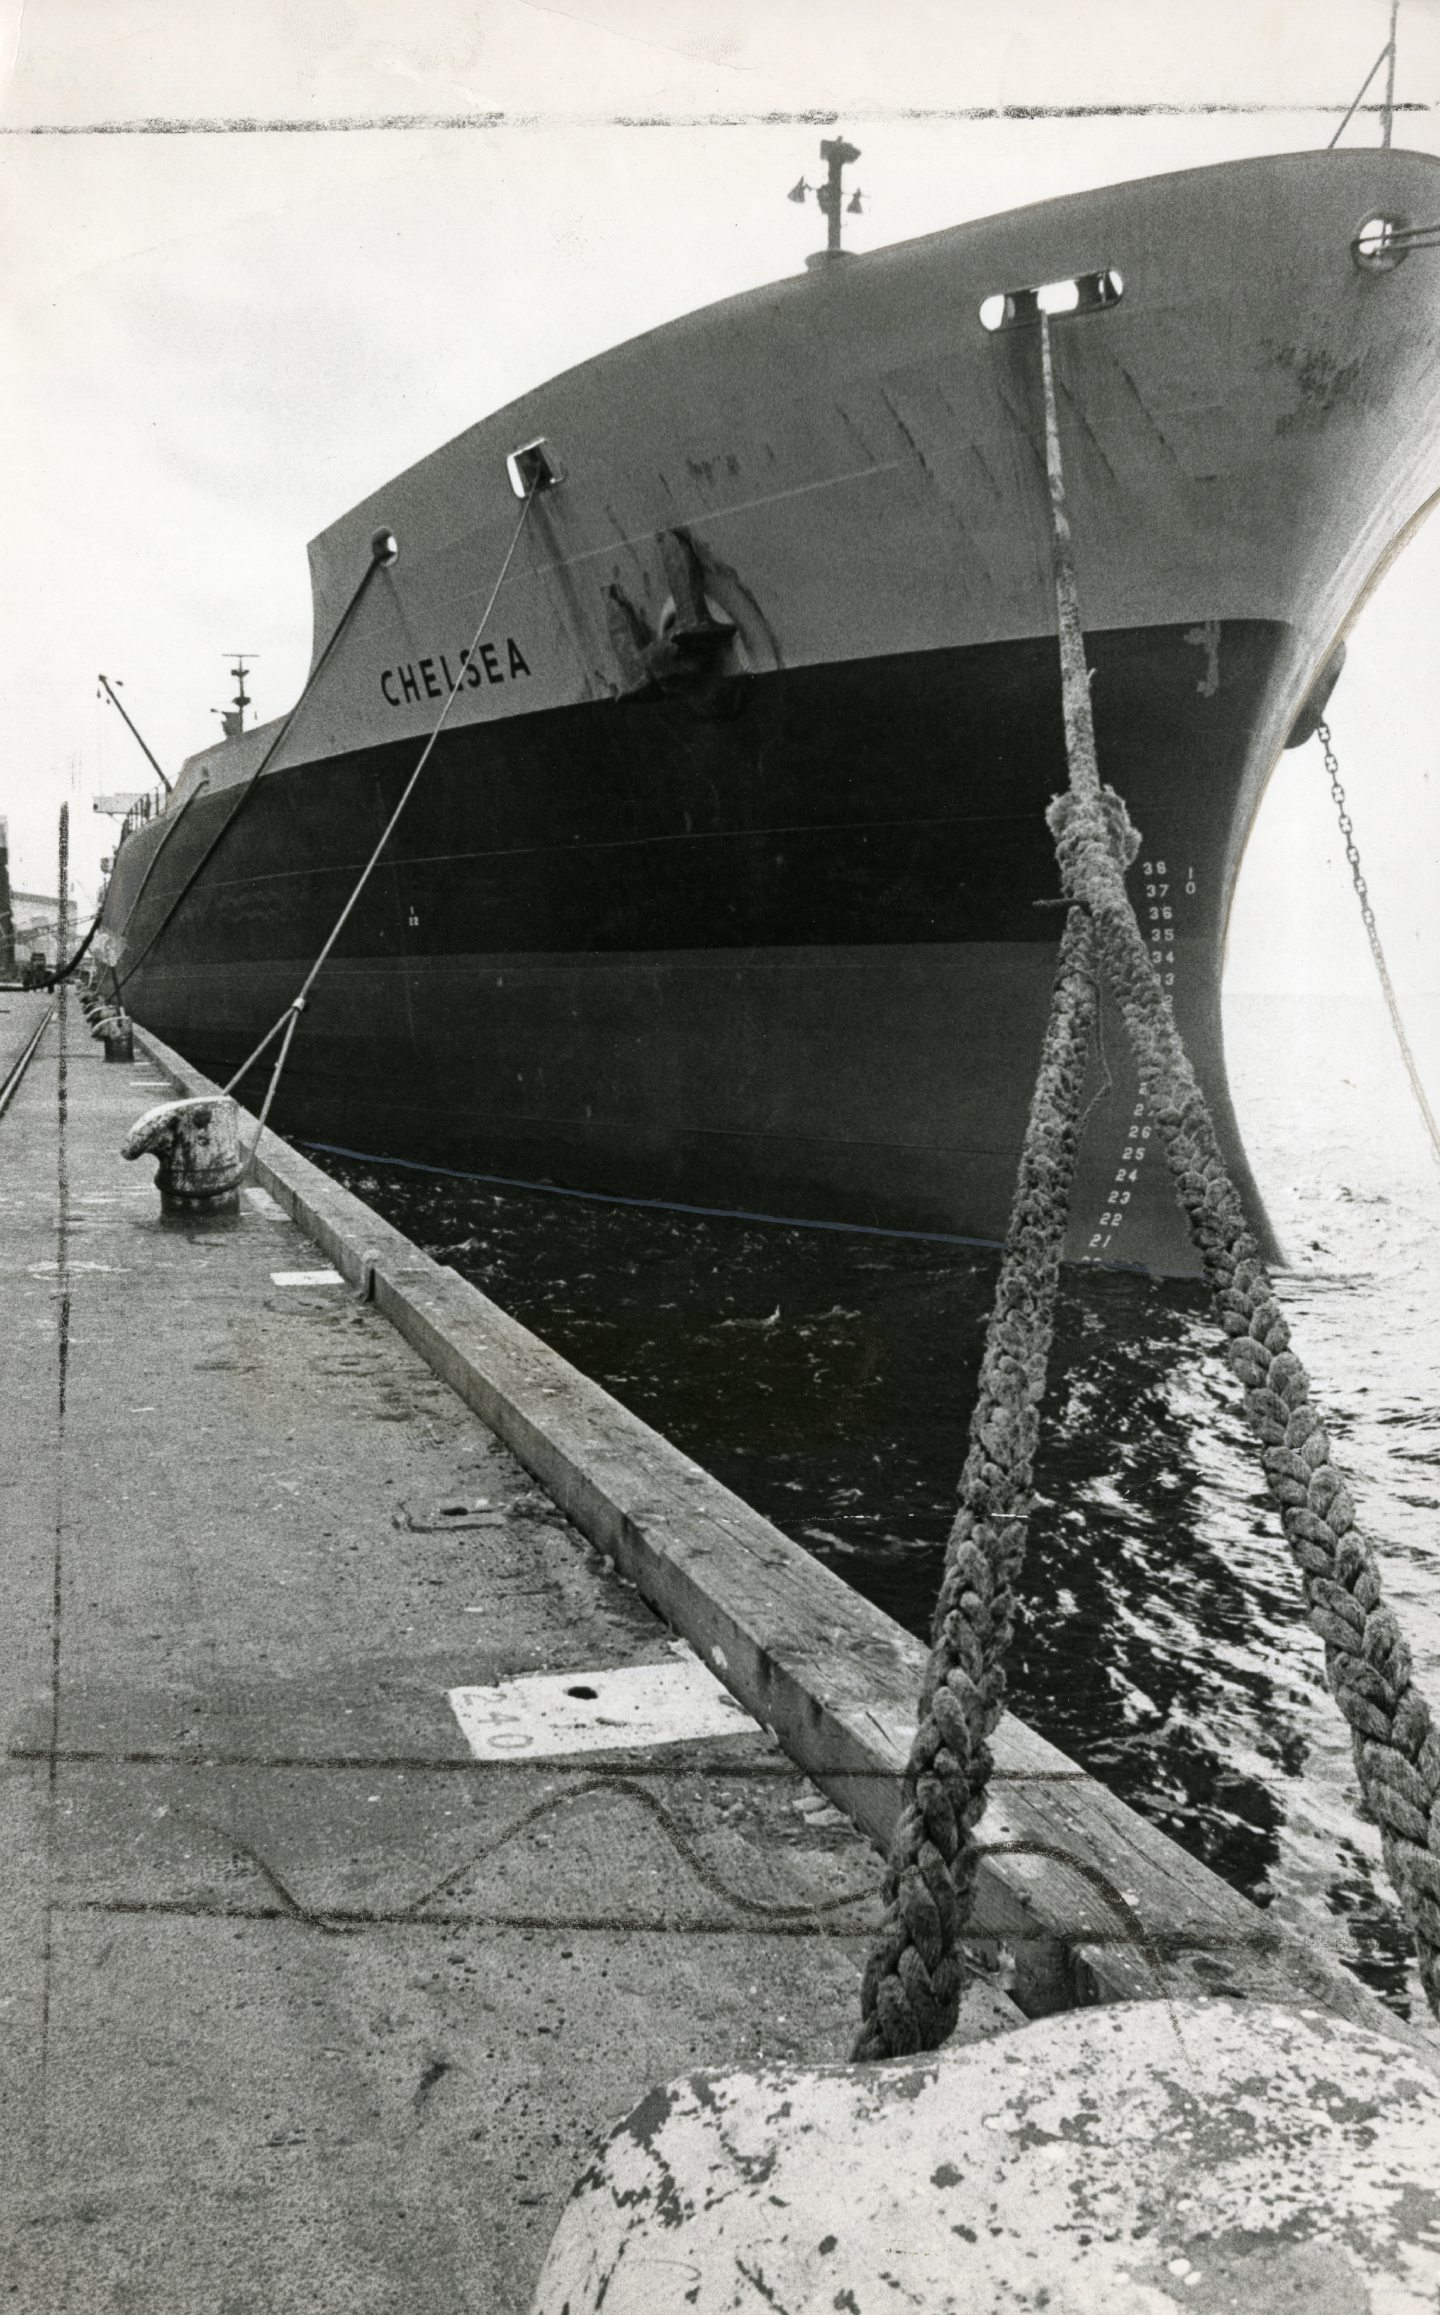 The Chelsea oil tanker berthed at the harbour following the drama in 1983.